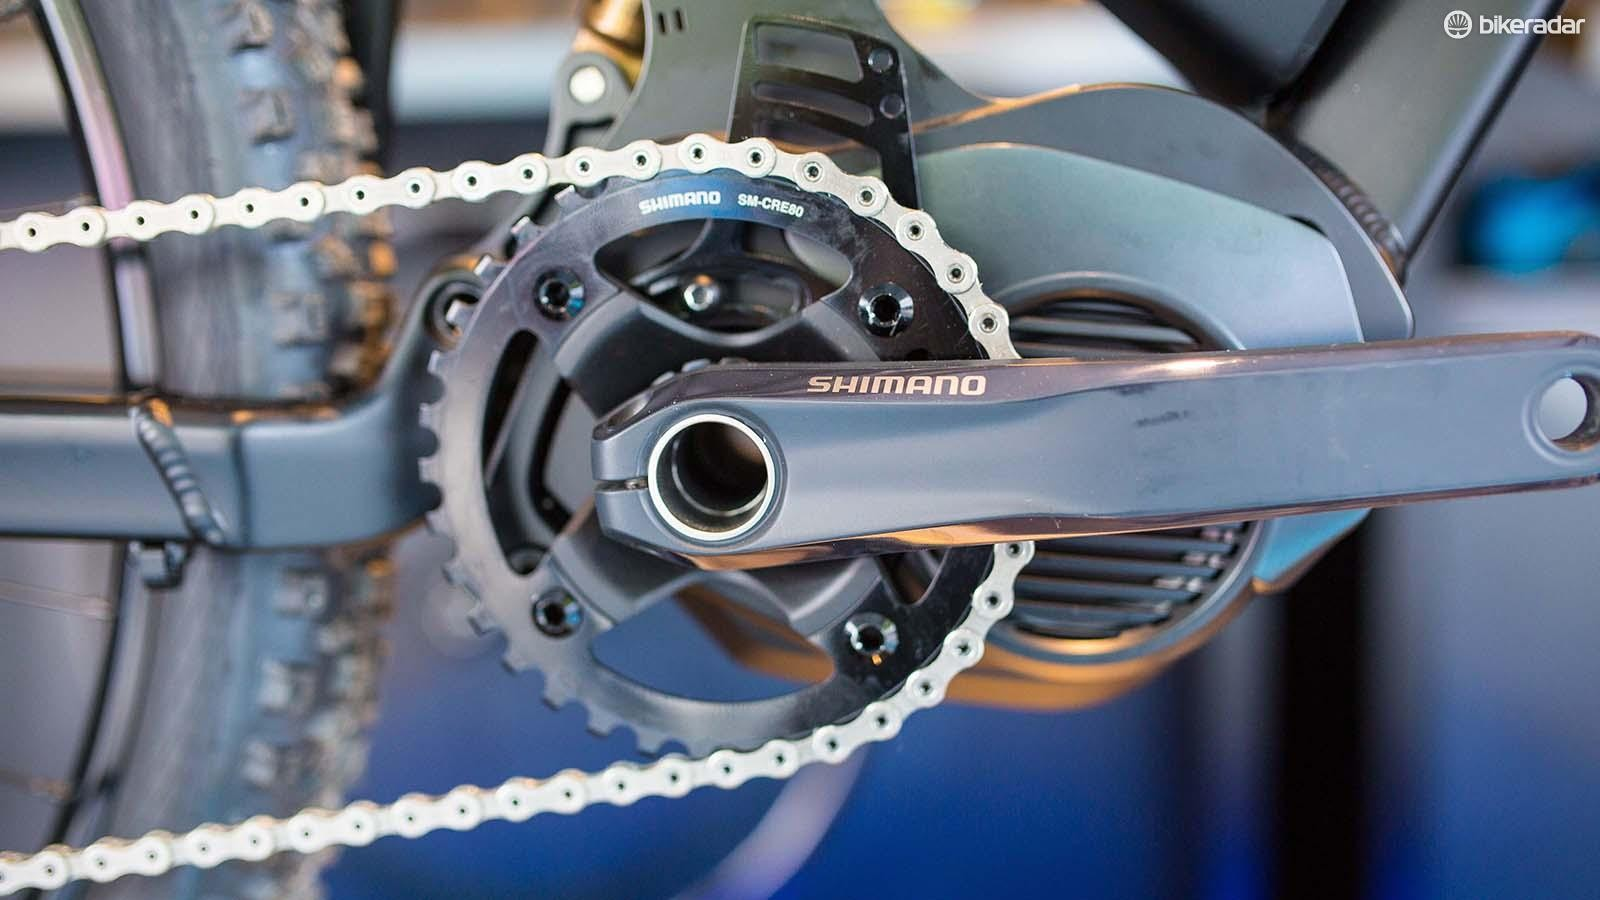 Shimano is among the brands getting on the e-MTB gravy train